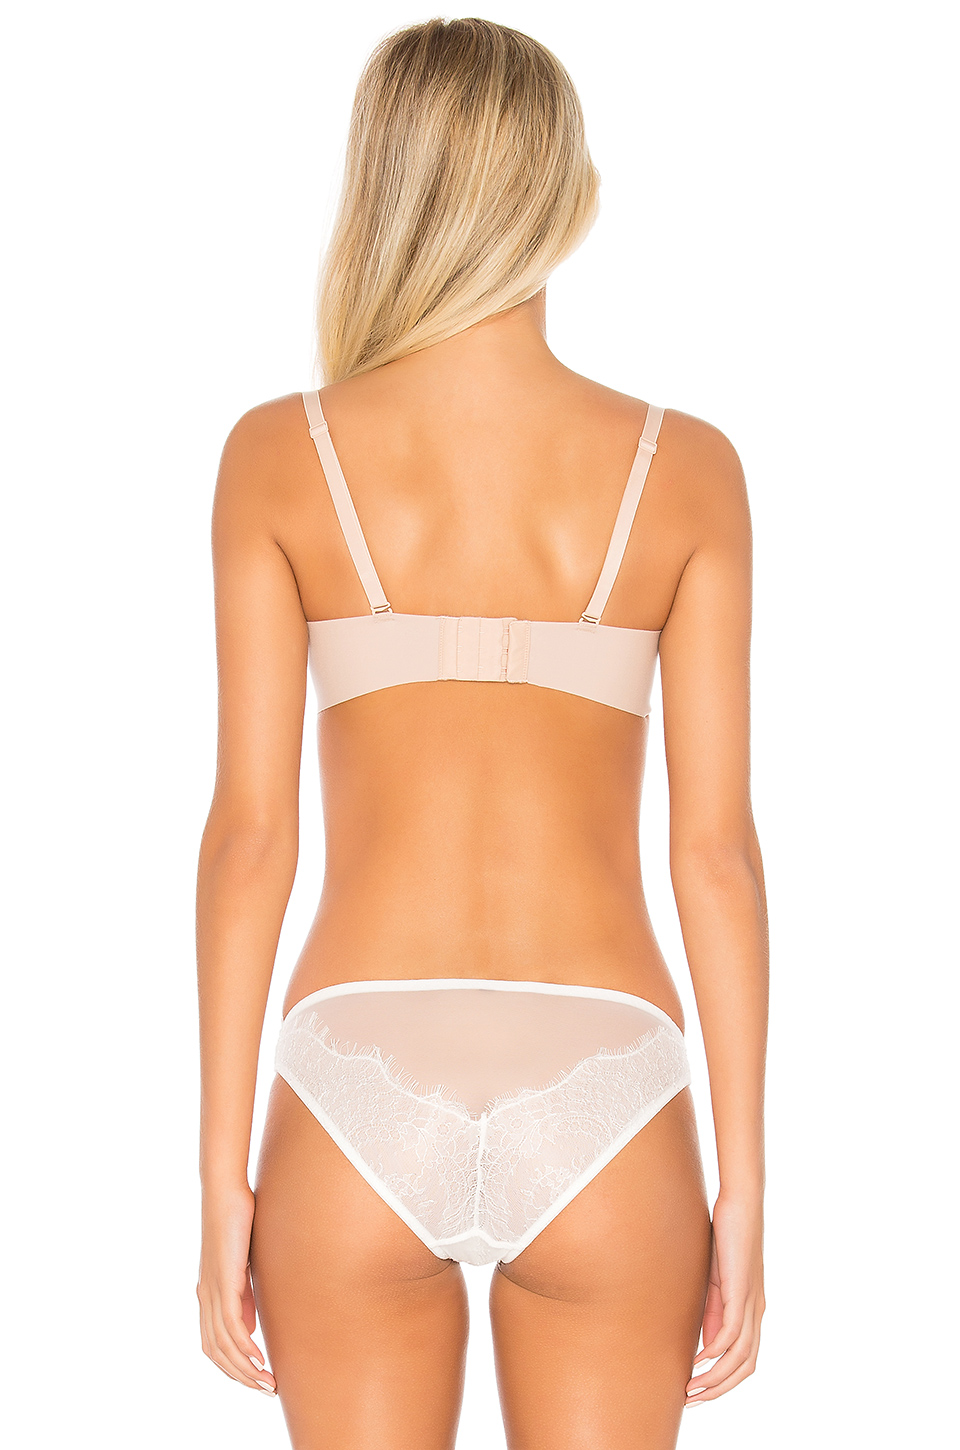 6feca889bed41 Buy Original SPANX Up For Anything Strapless Bra at Indonesia